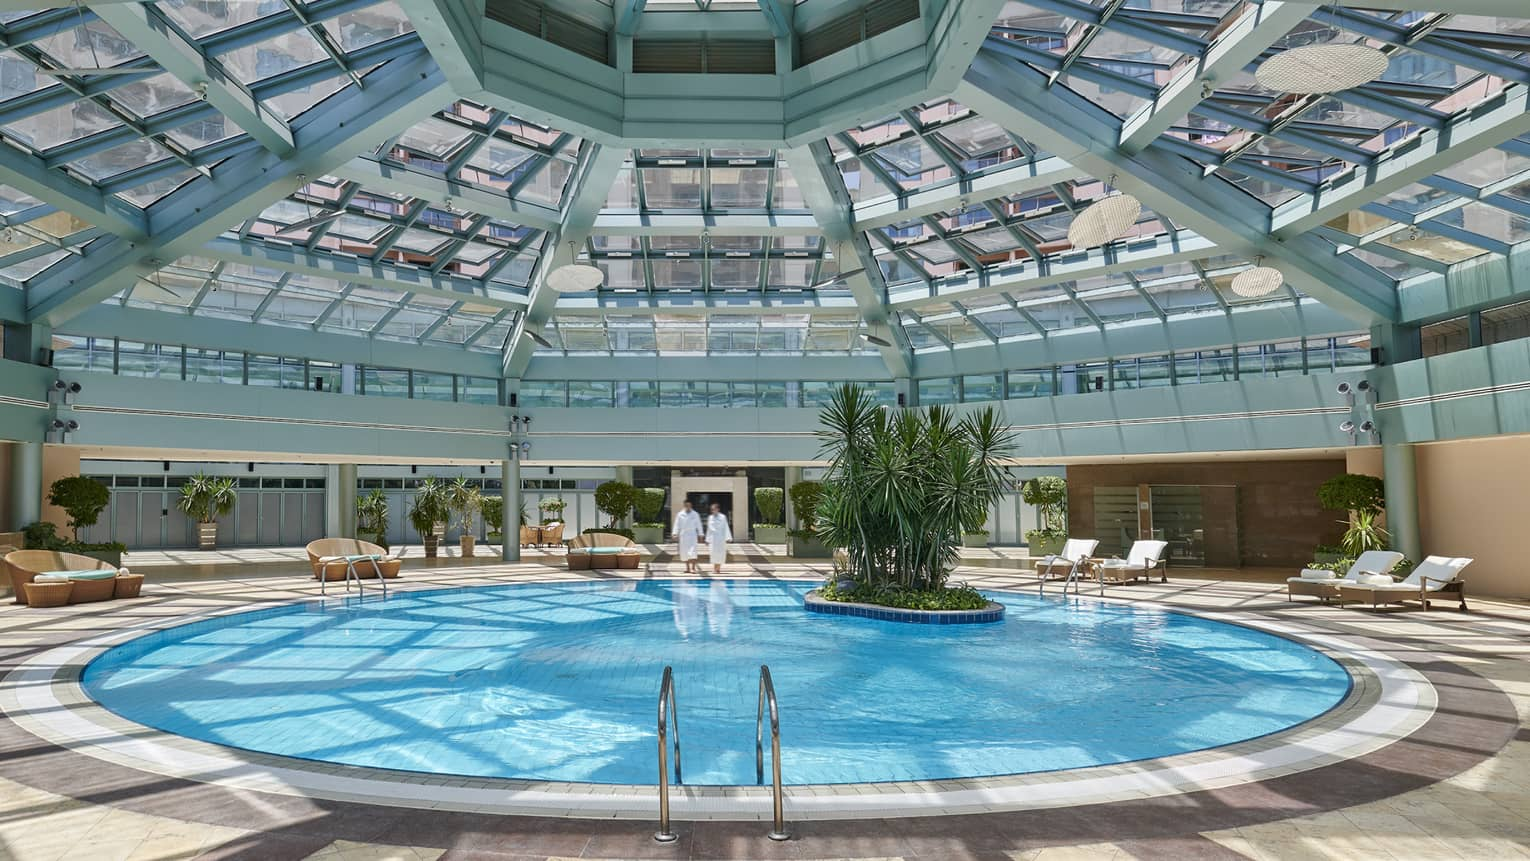 Skylights pour in natural light over the indoor pool at four seasons hotel alexandria